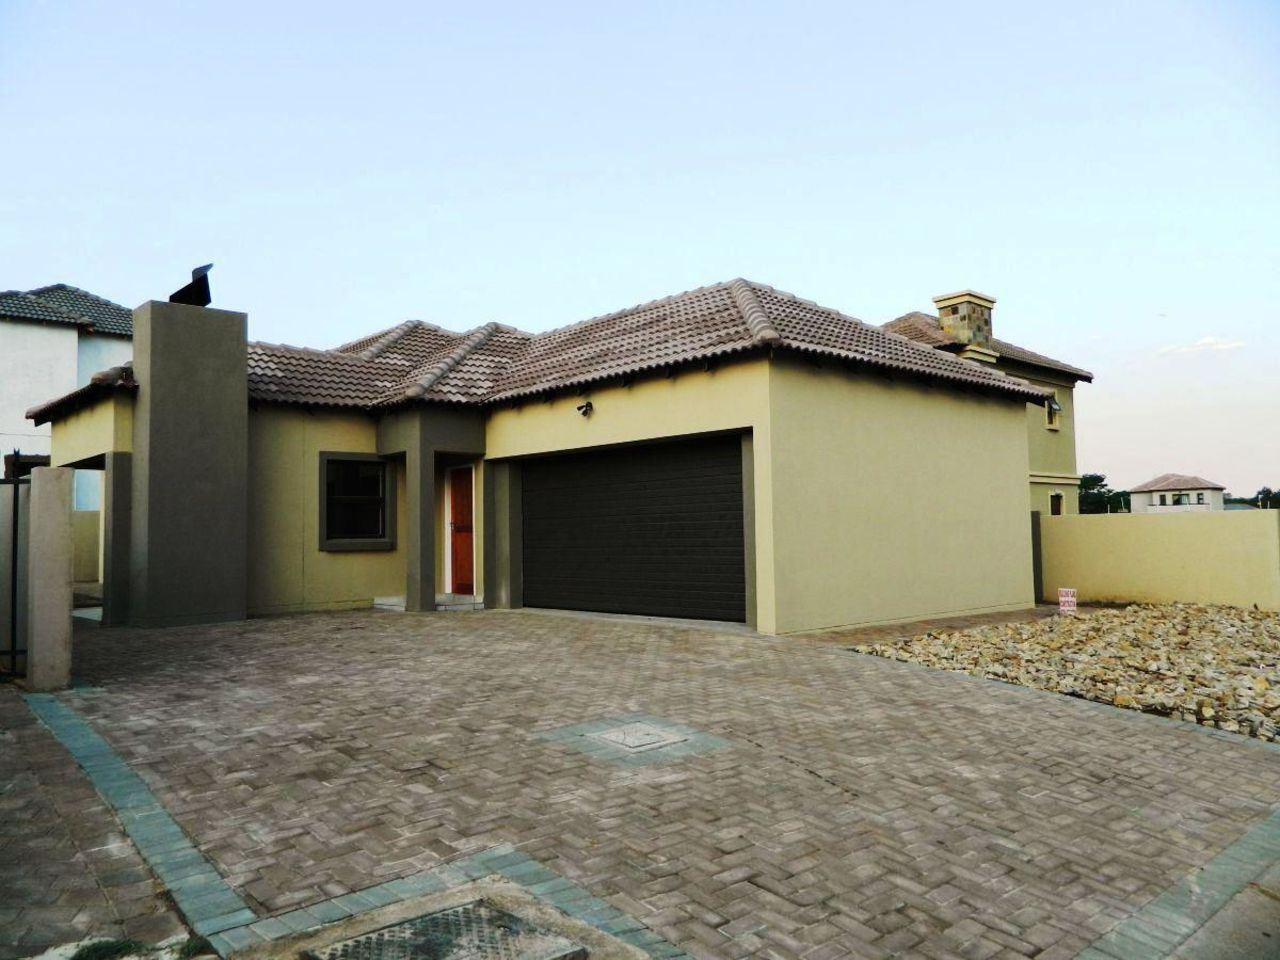 House for sale at hartebeespoort dam , Gateway manor